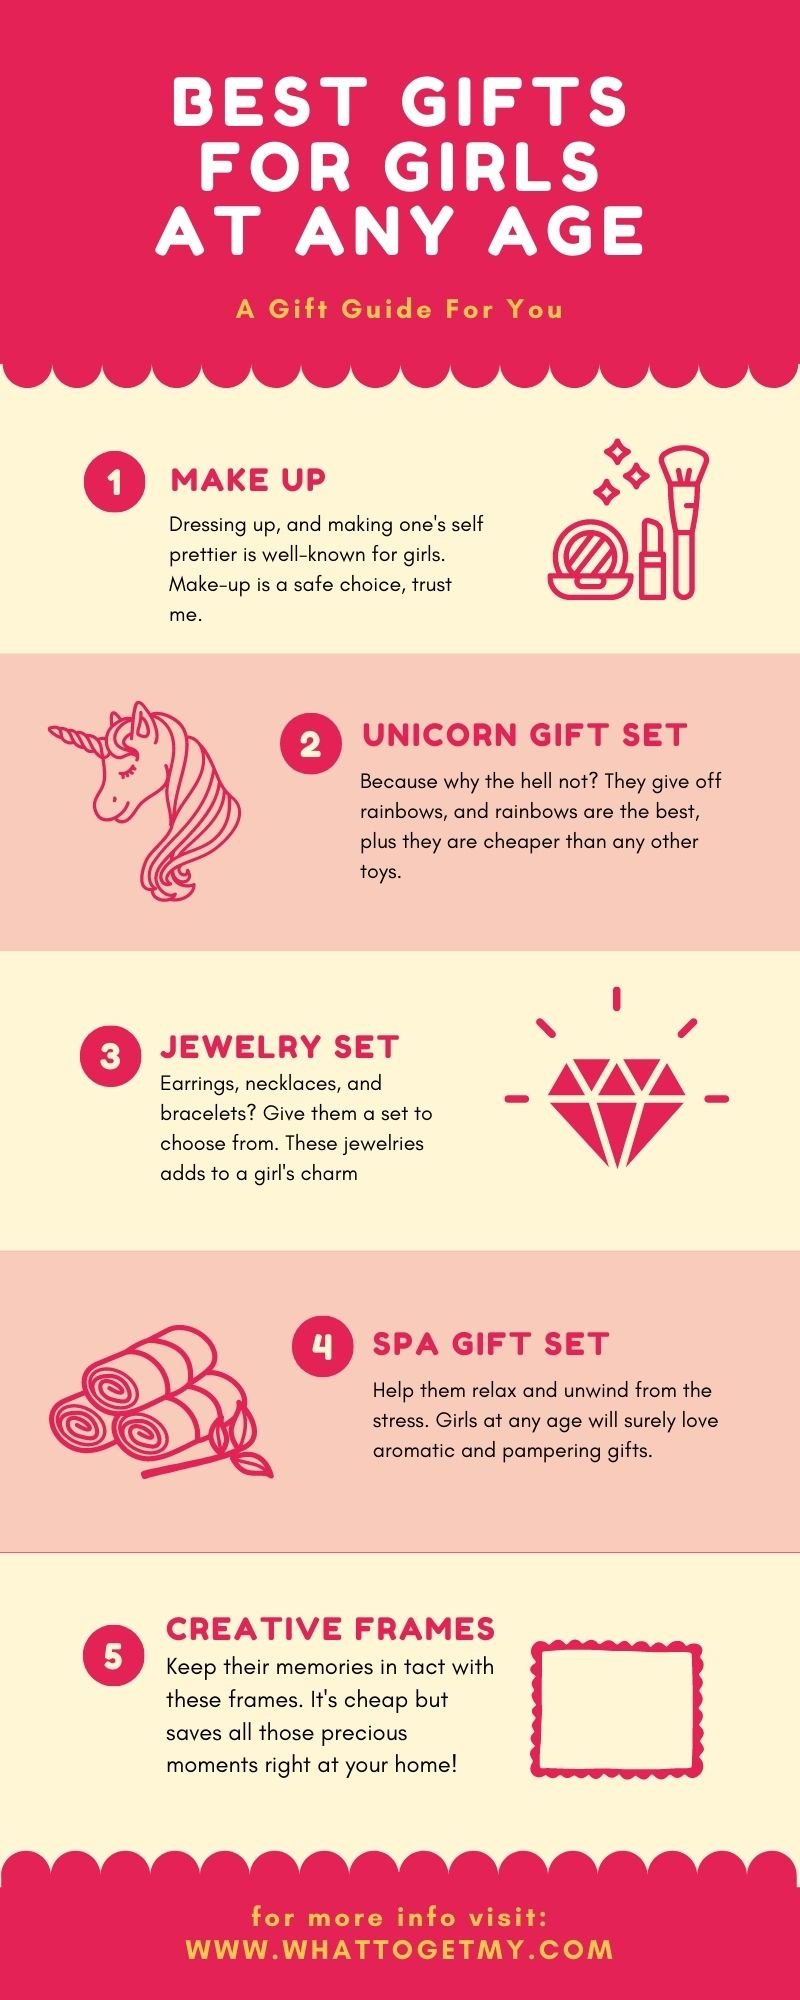 BEST GIFTS FOR GIRLS AT ANY AGE